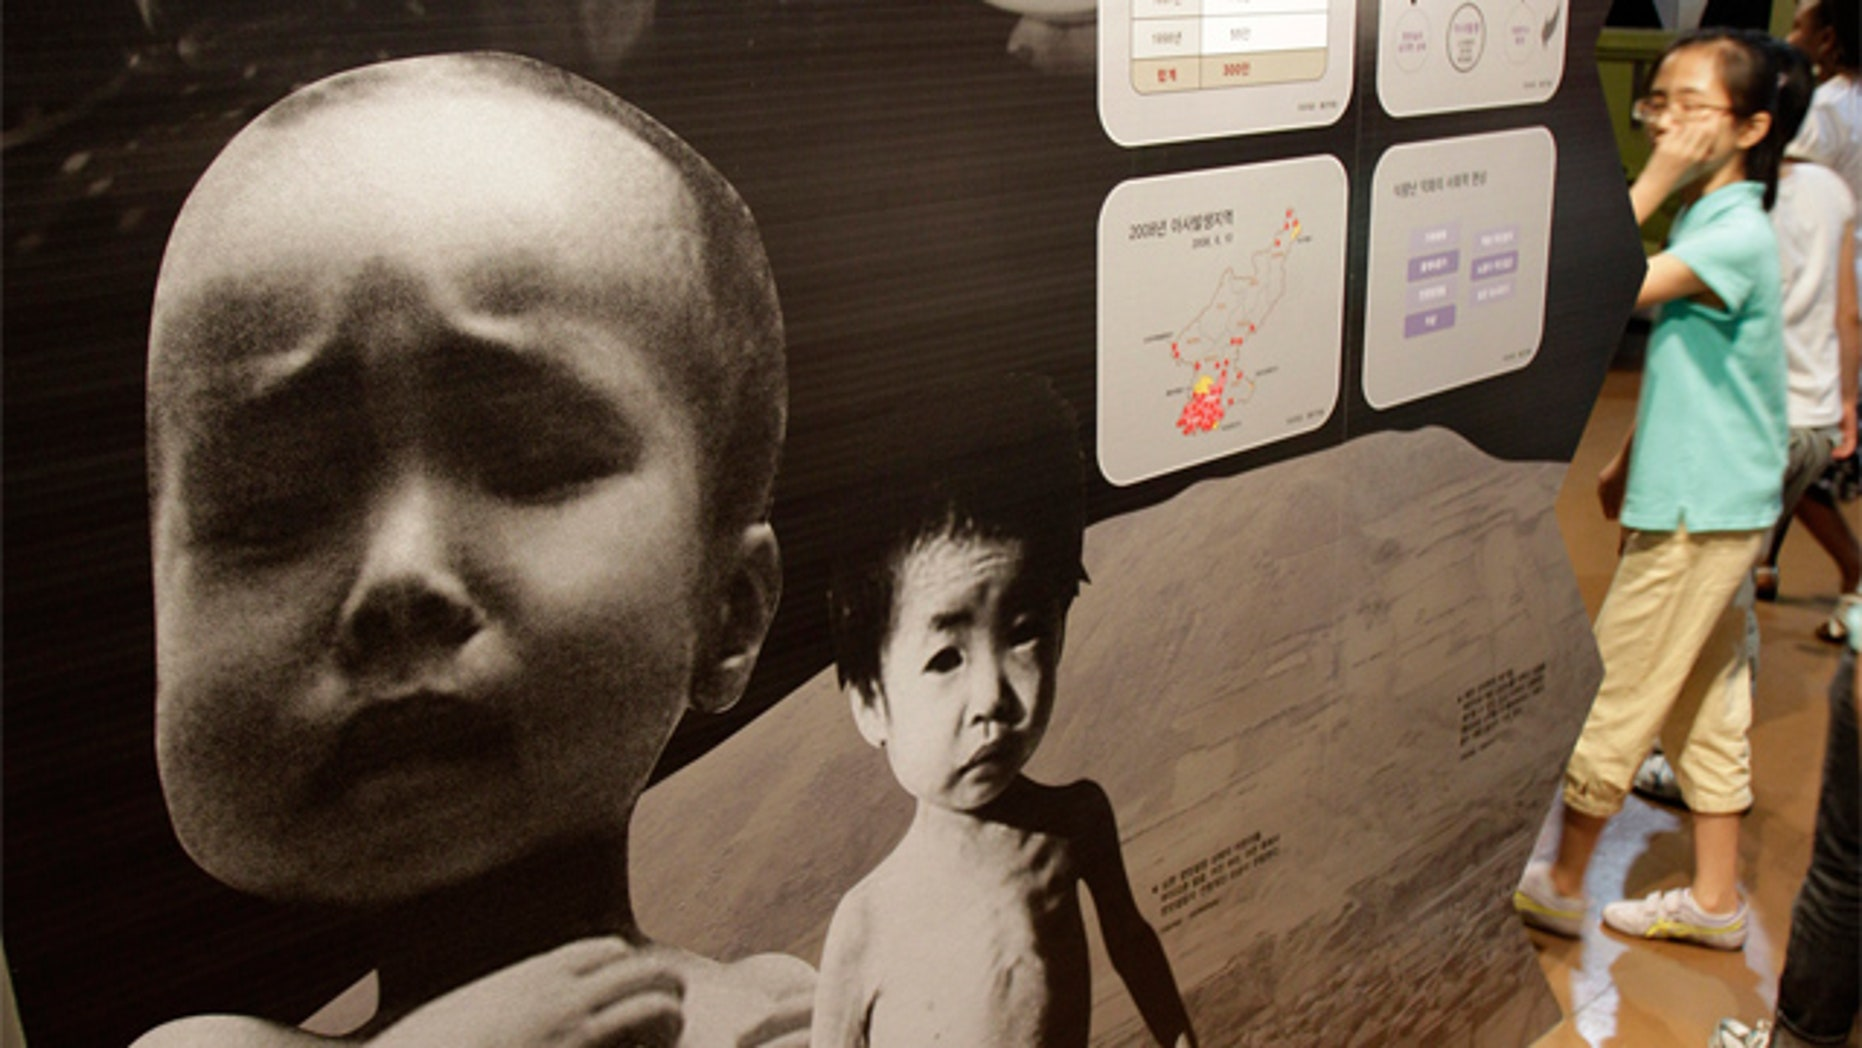 July 15: South Korean students walk by a picture showing a North Korean child suffering from famine at Korean War exhibition in Seoul, South Korea.